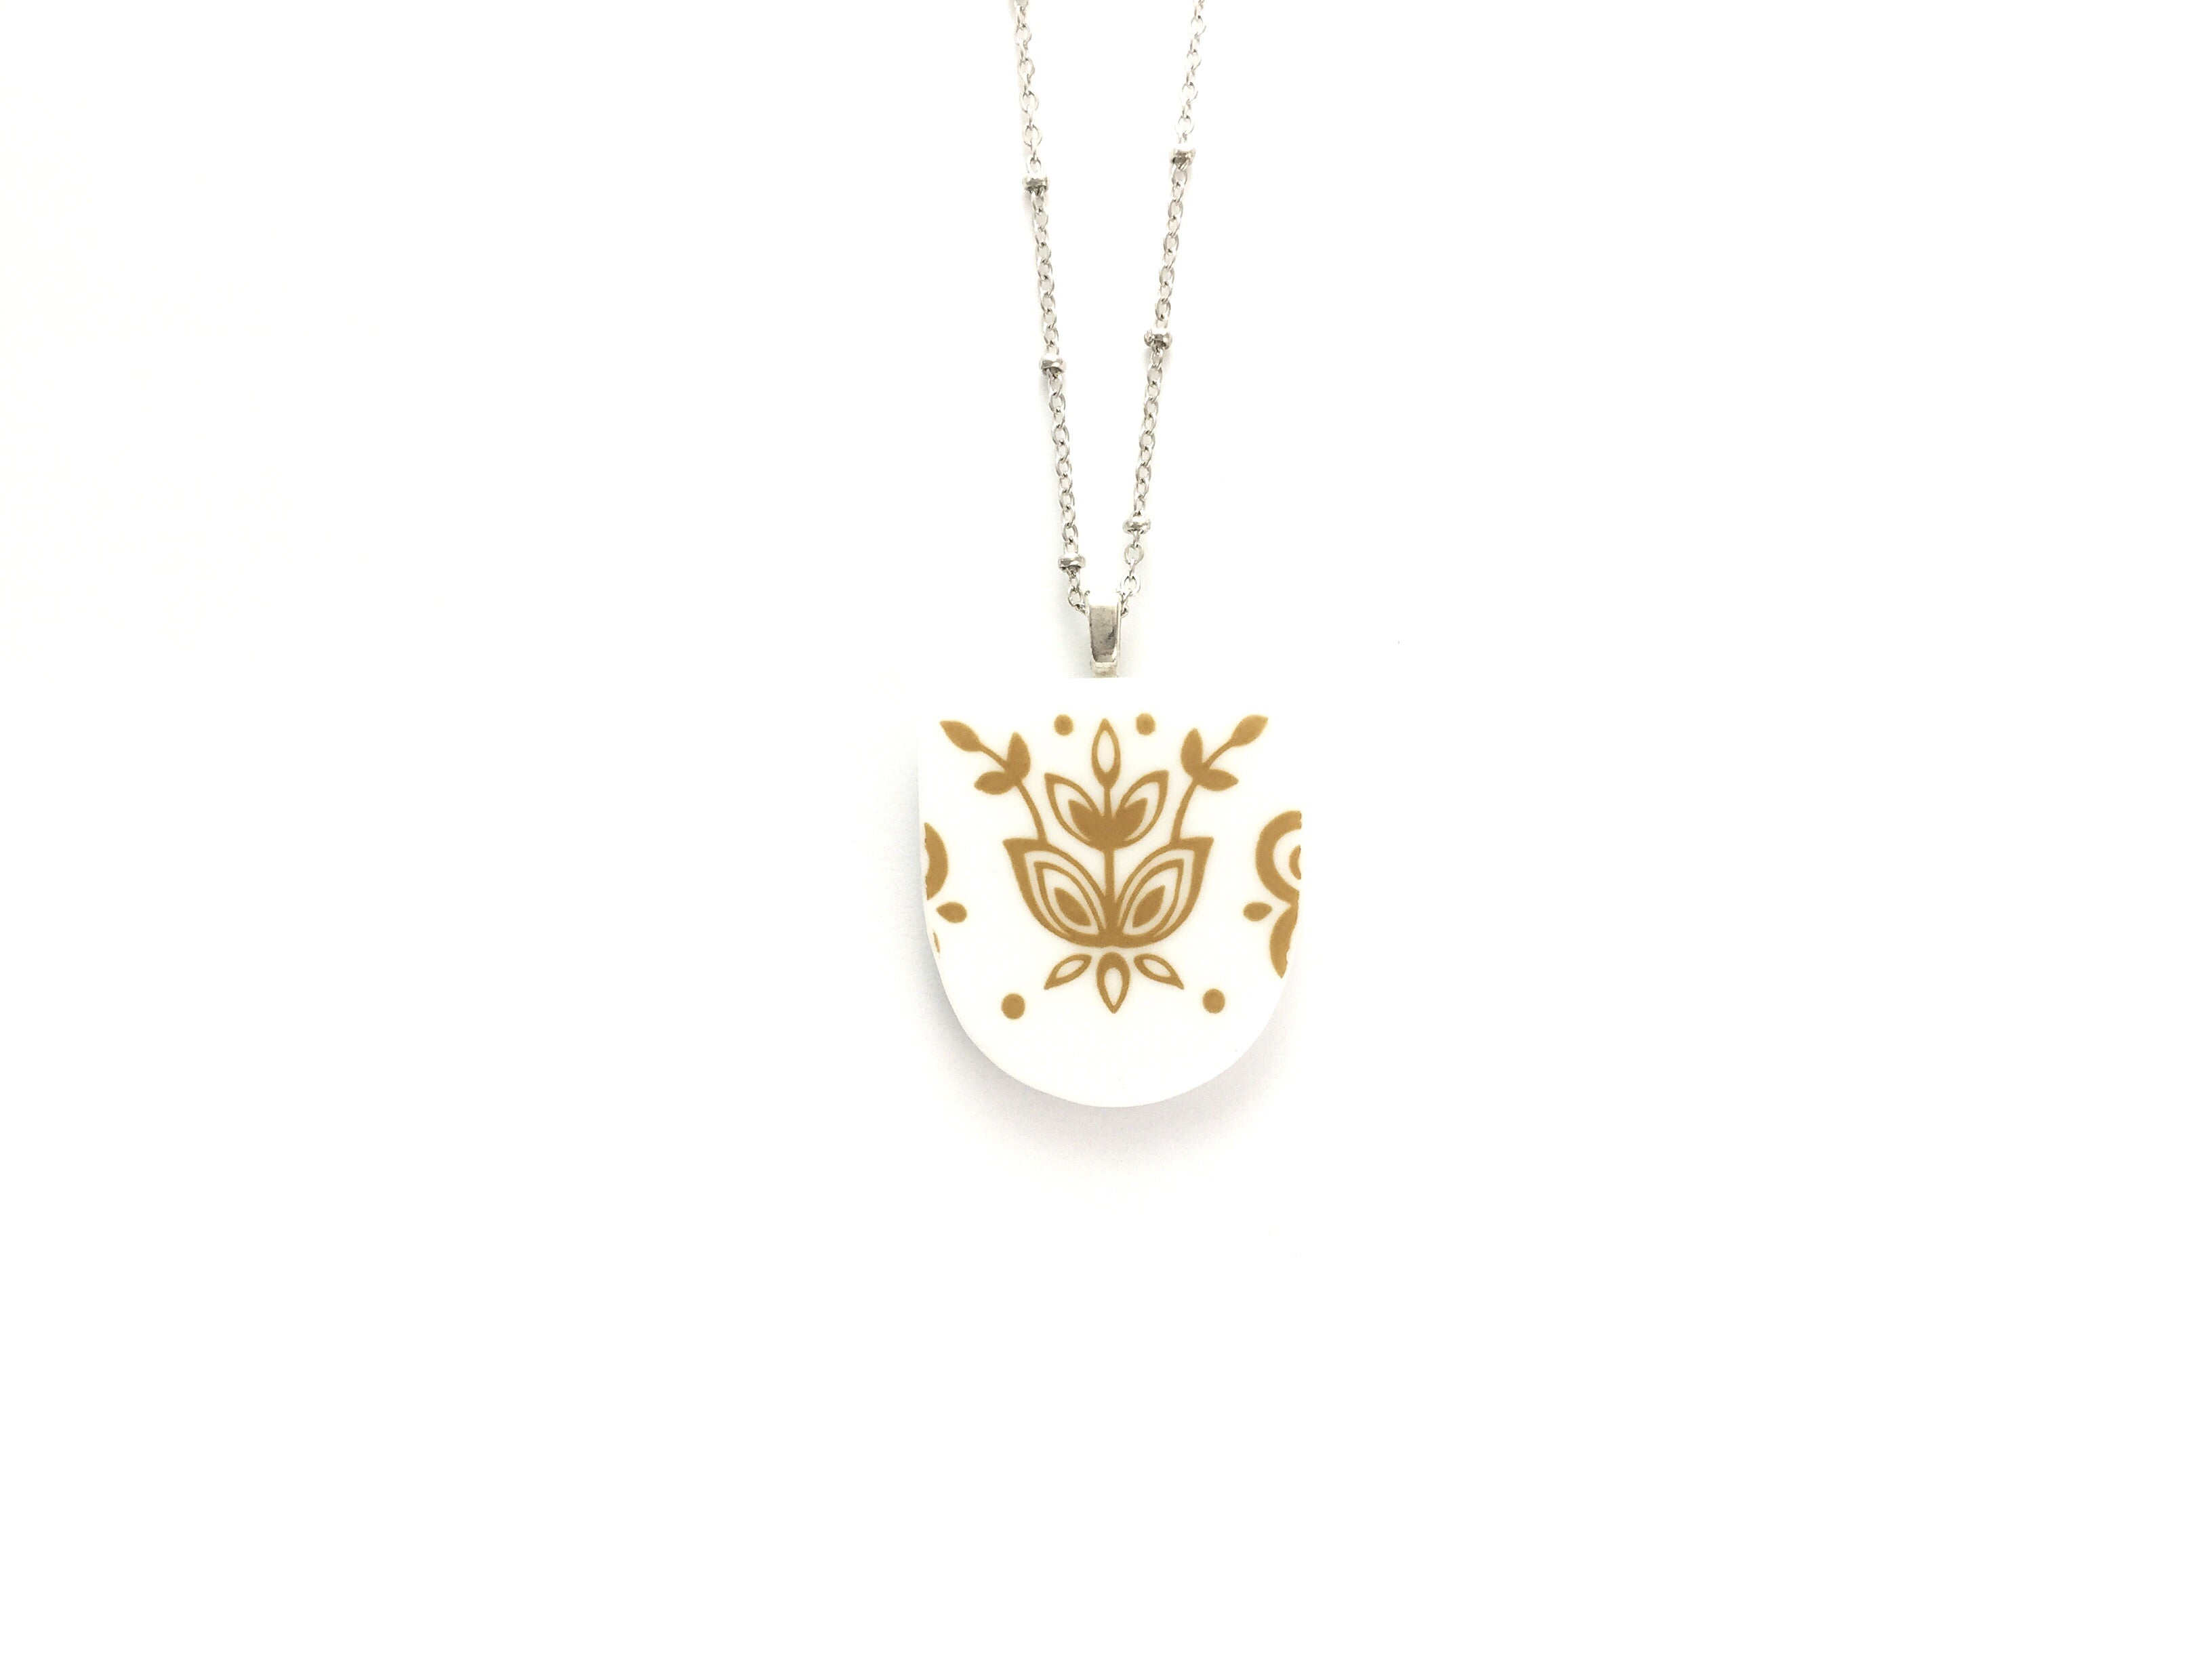 Broken China Jewelry - Corelle Necklace in Butterfly Gold Pattern Main Image